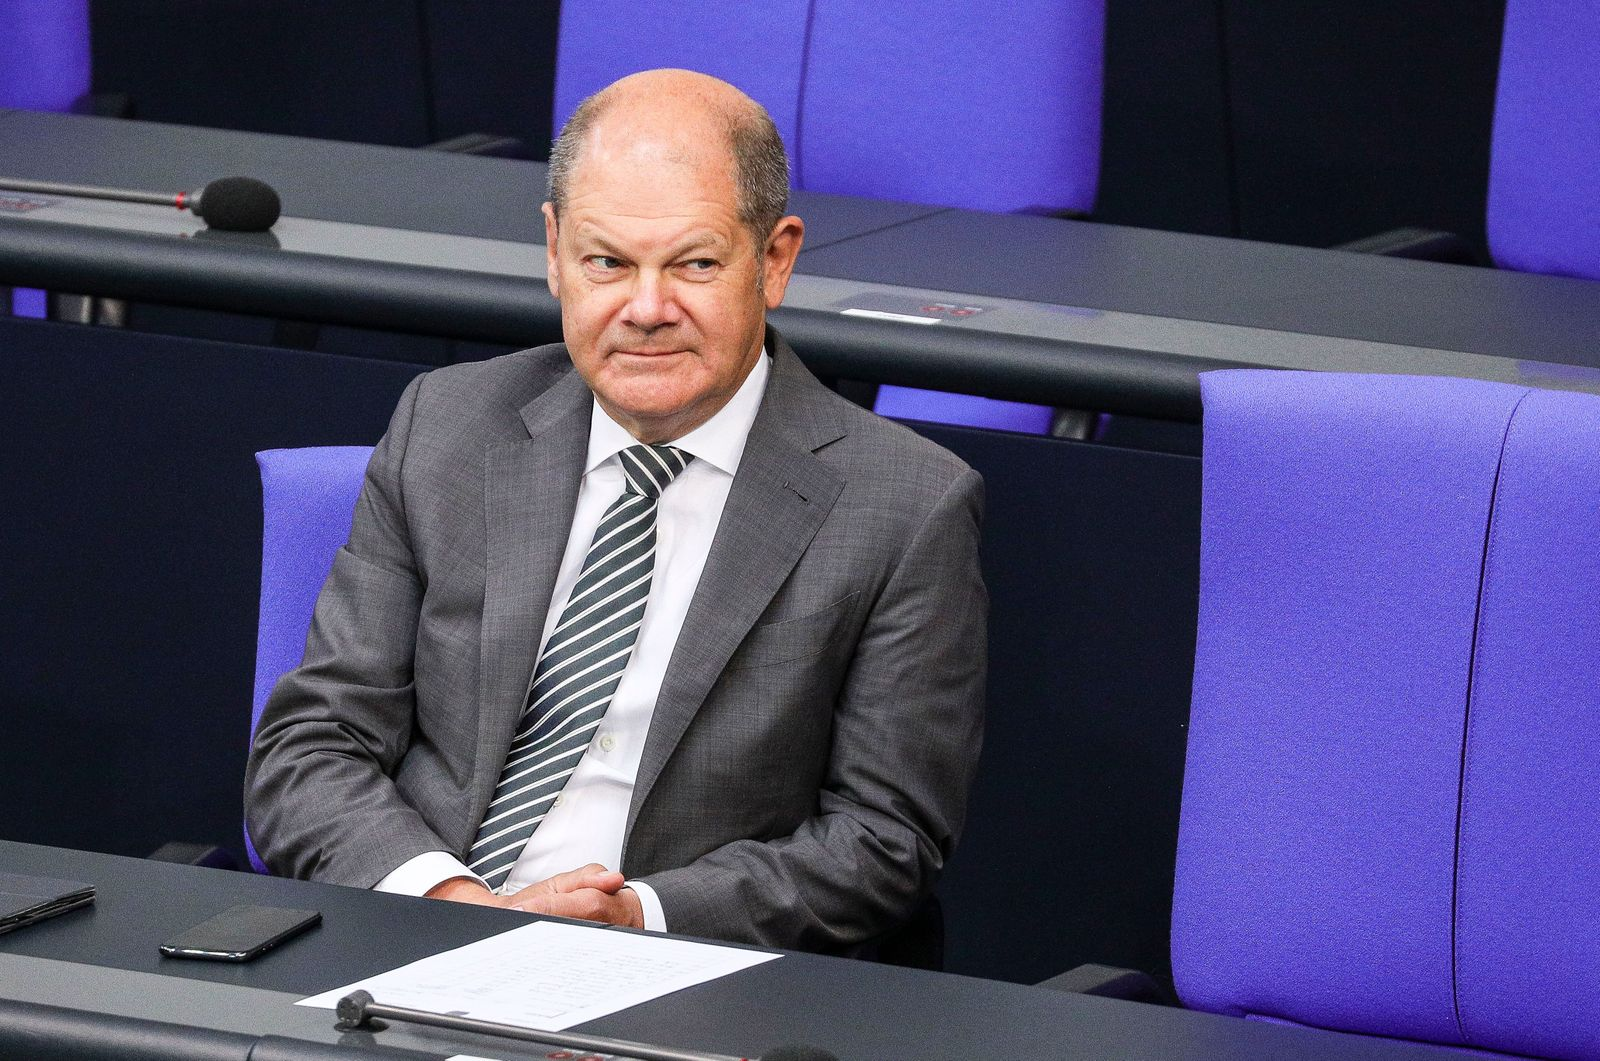 Olaf Scholz becomes SPD candidate for chancellor, Berlin, Germany - 29 Jun 2020